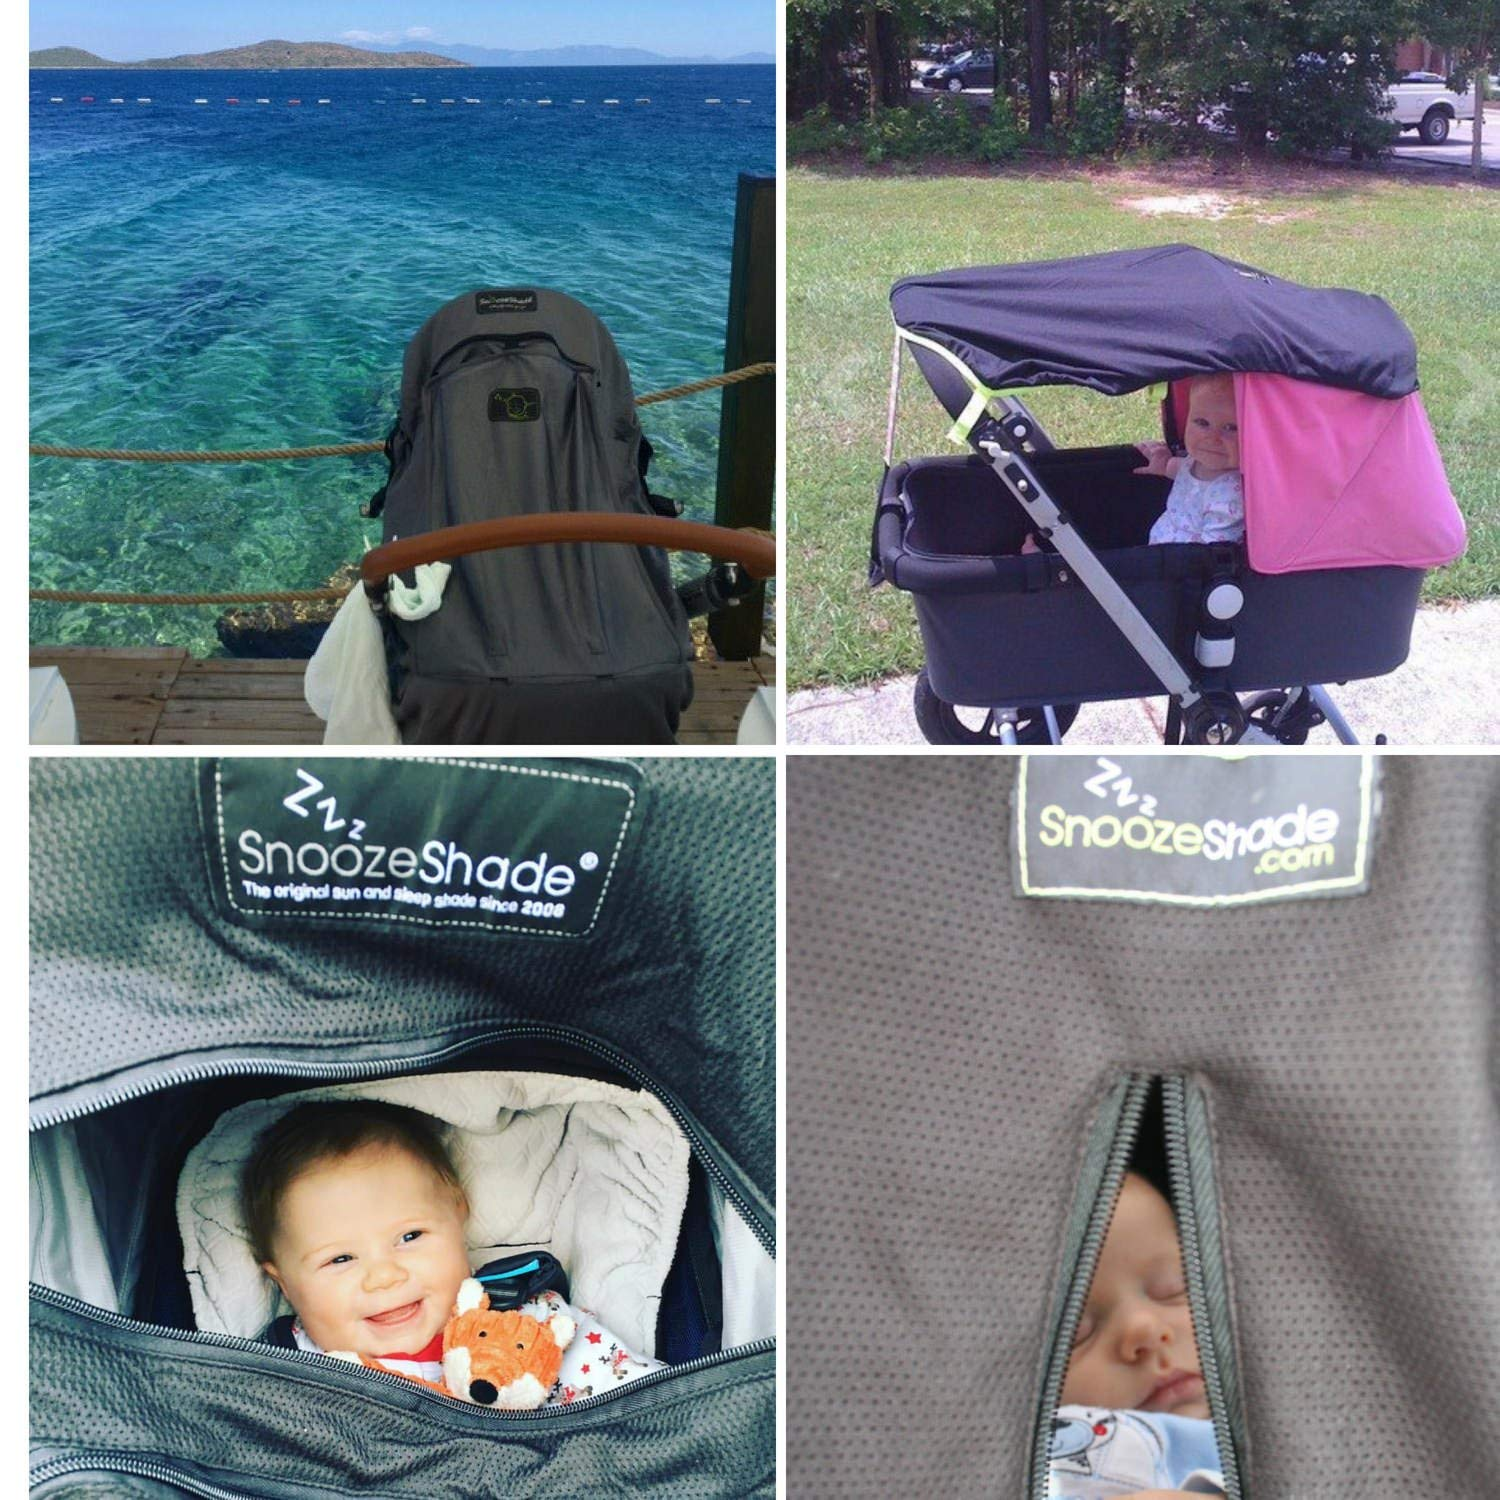 SnoozeShade Plus Deluxe | Universal fit sun shade for strollers | 360-degree sun and UV protection | Sleep shade and mosquito net | Recommended for 6m+ by SnoozeShade (Image #7)